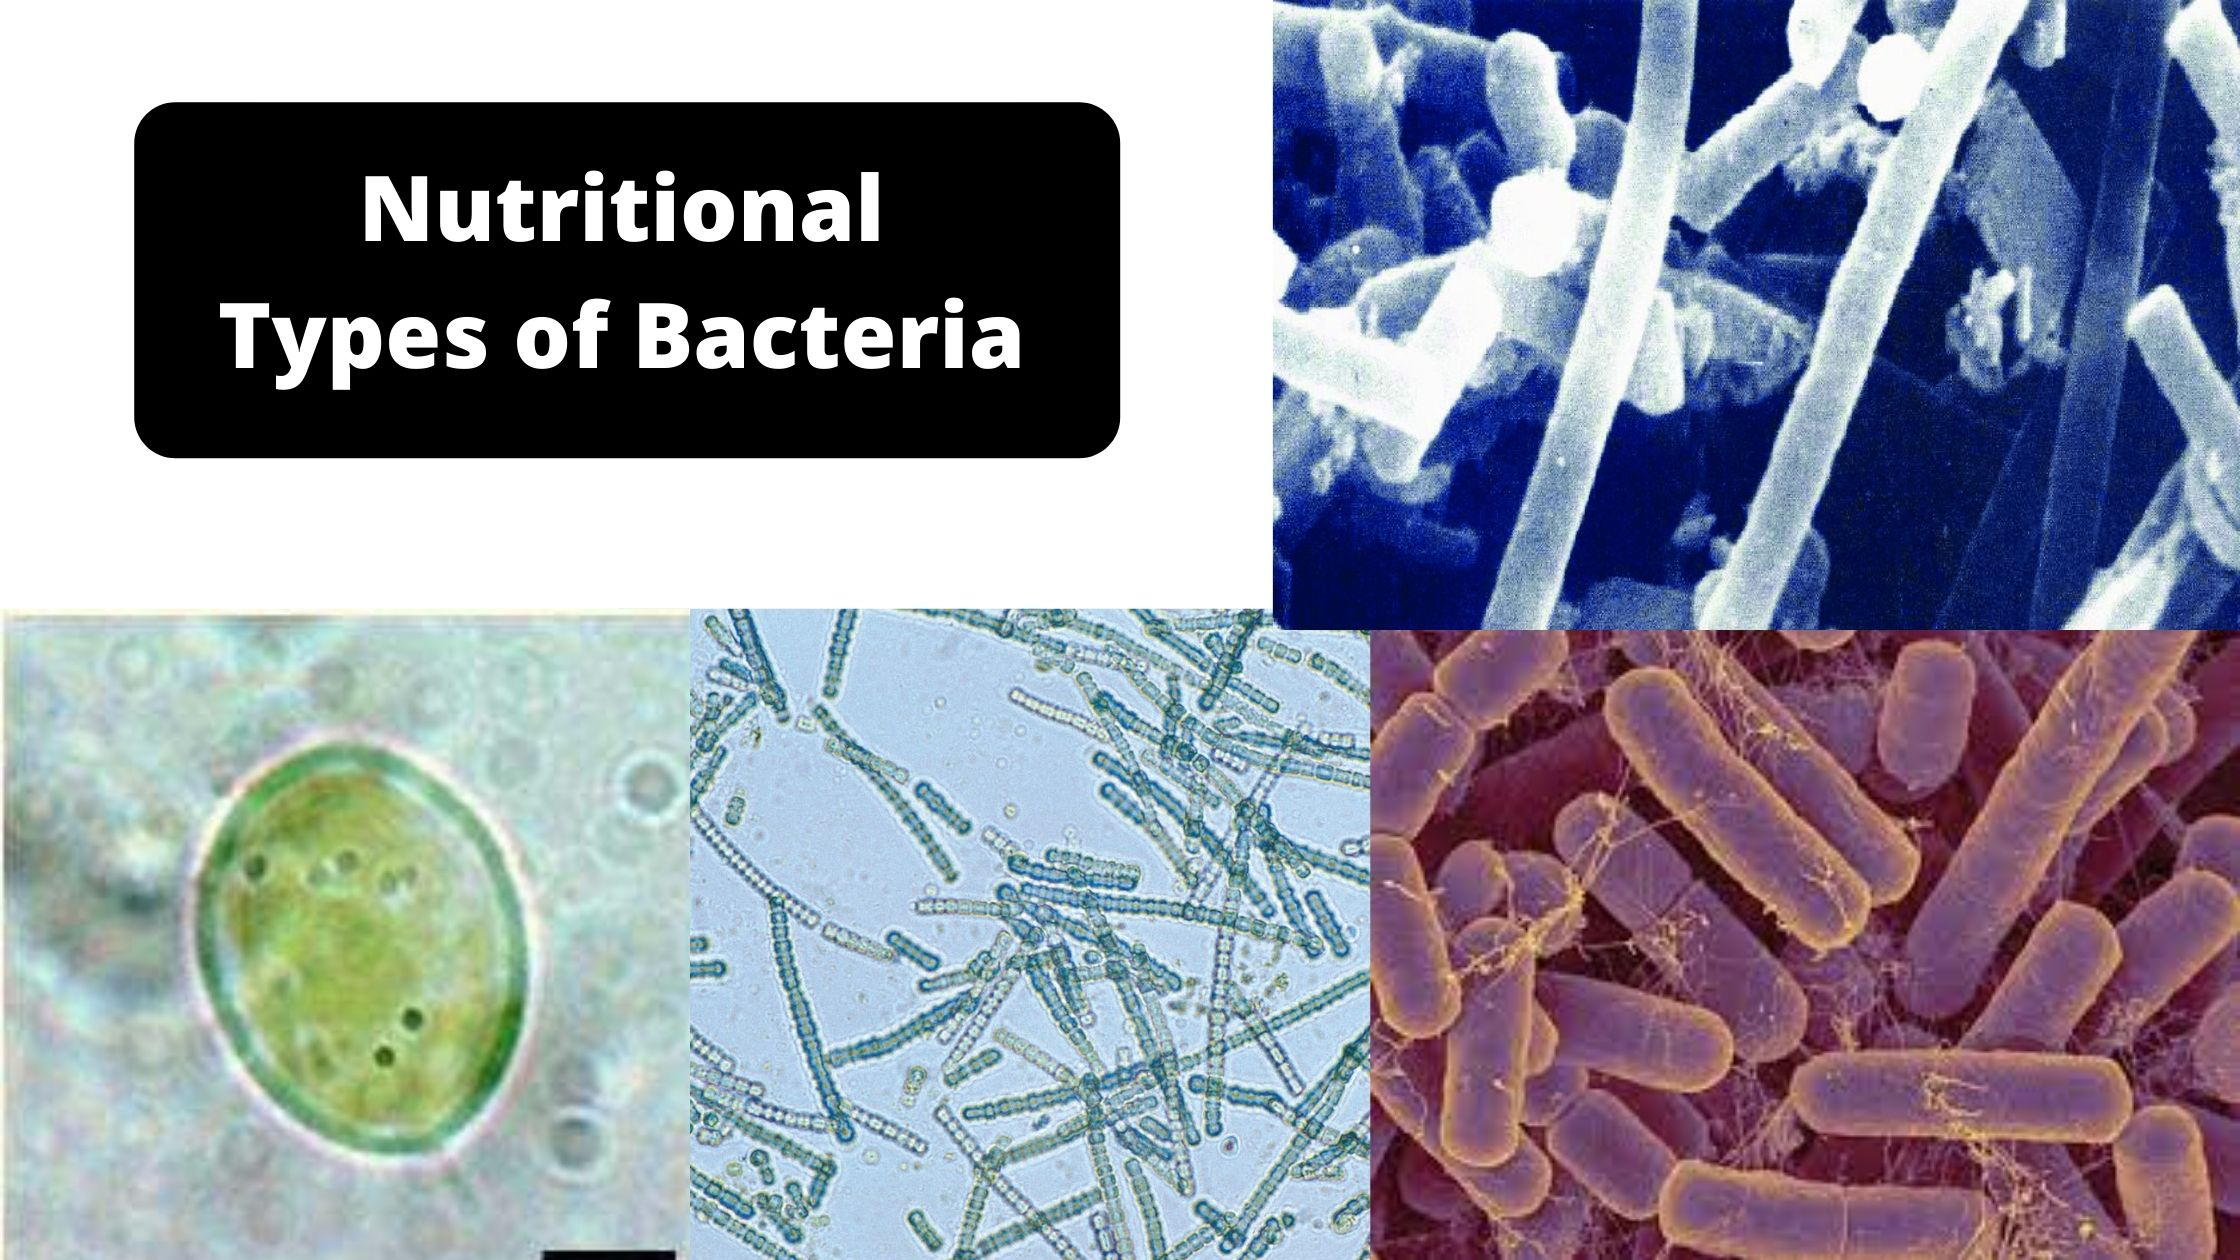 Nutritional types of bacteria: Classification of bacteria based on Nutritional Requirement